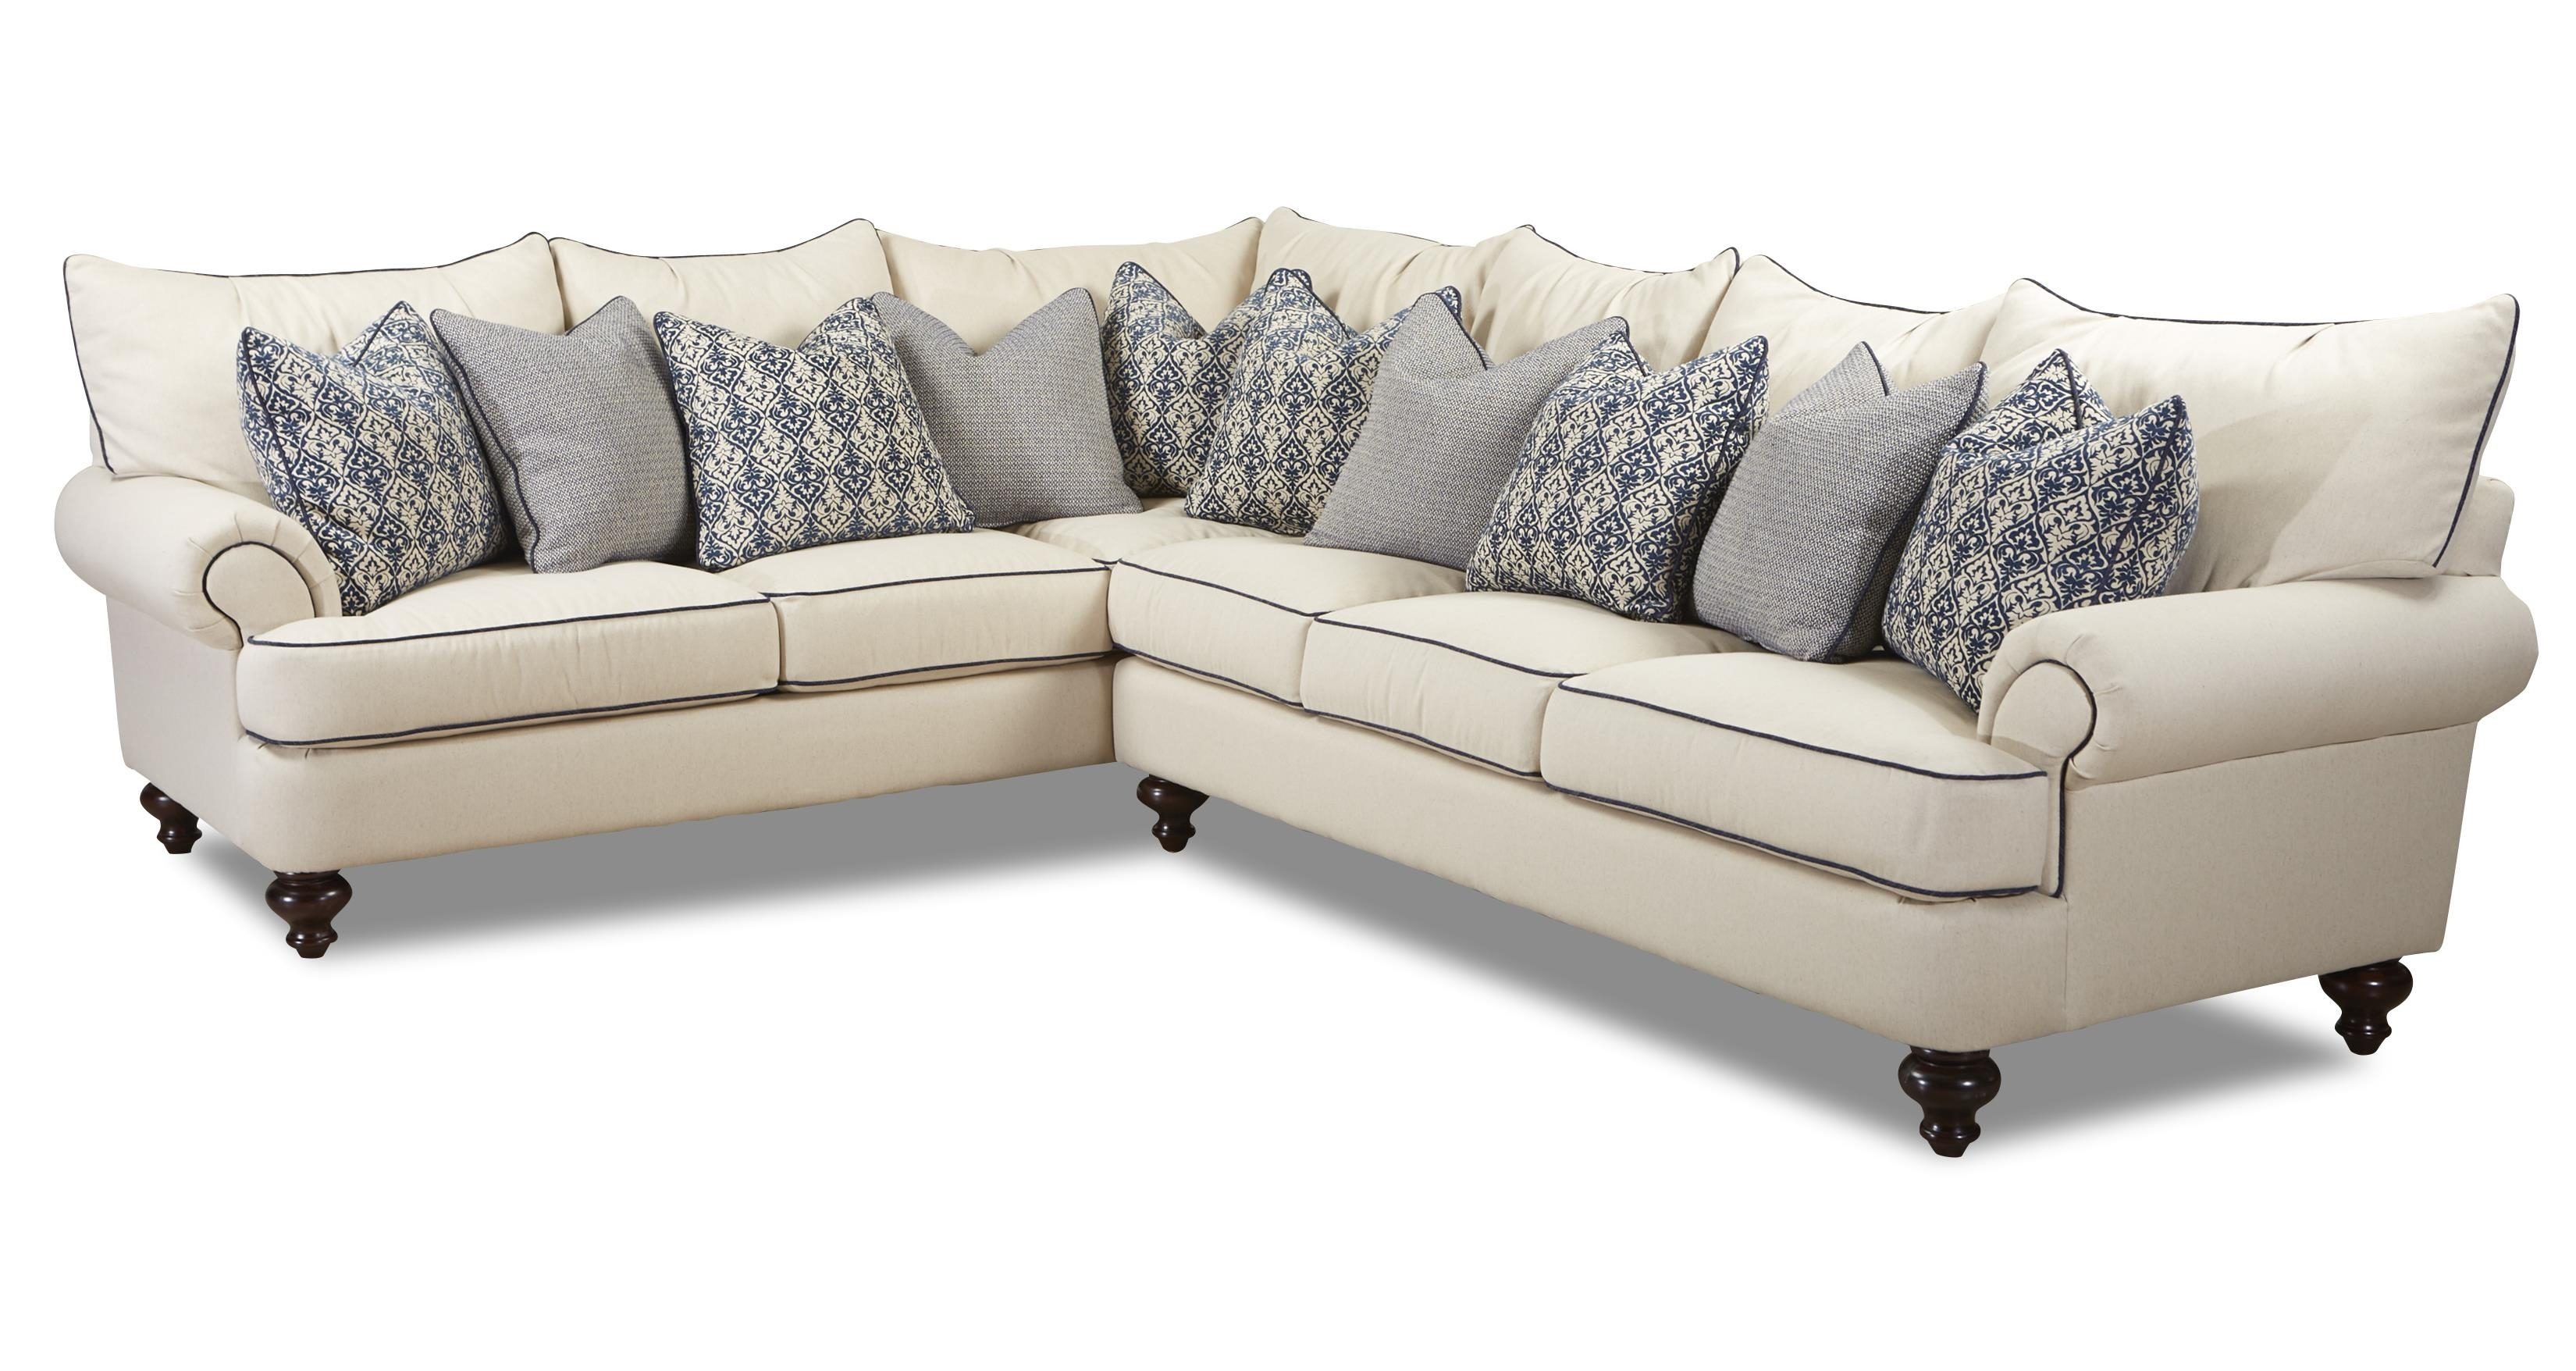 Shabby Chic Sectional Sofaklaussner | Wolf And Gardiner Wolf Pertaining To Shabby Chic Sofas (View 5 of 10)